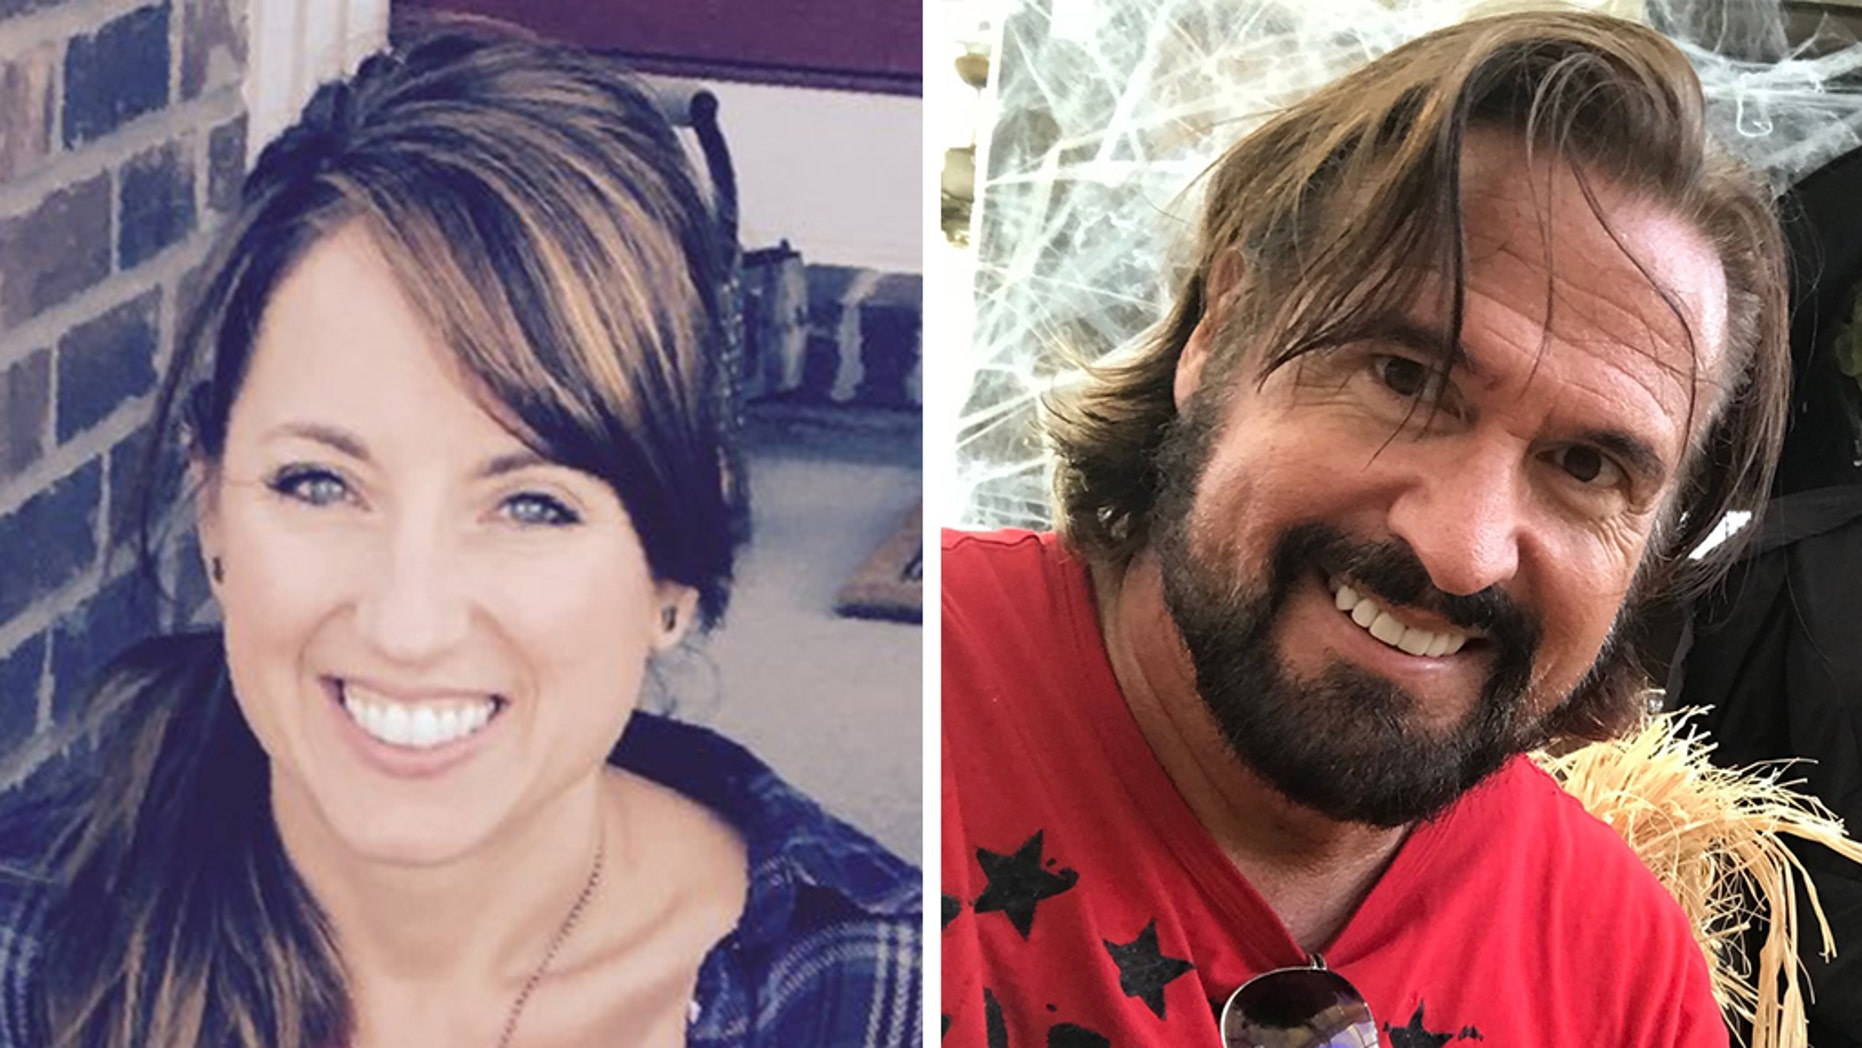 Kristal and Frank Sergi, two Hamilton Southeastern teachers found dead in a house on Wednesday night.